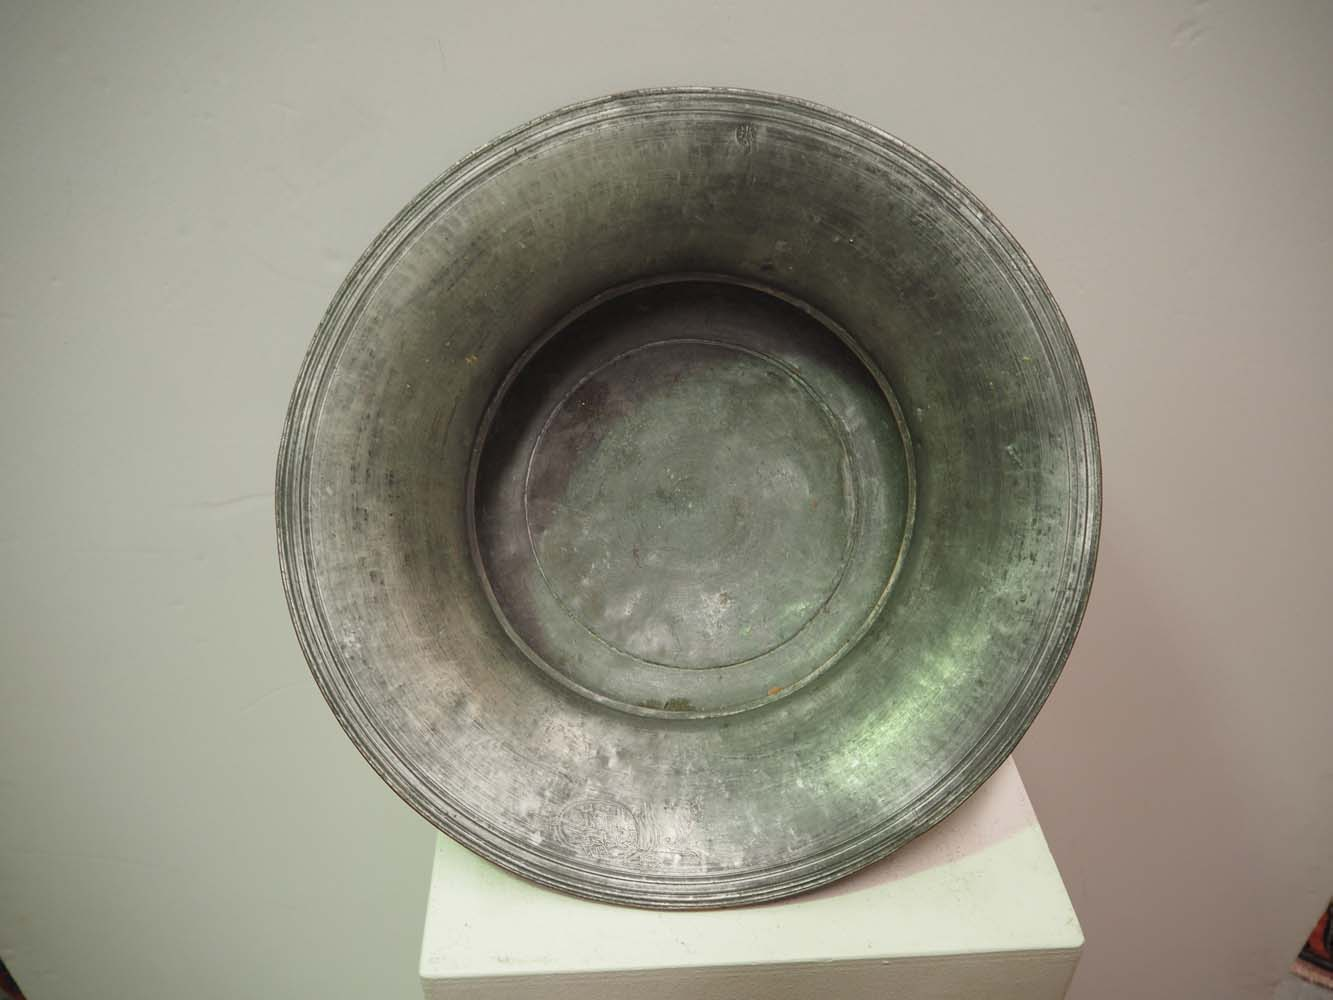 Fine early 19th century ottoman tinned copper engraved bowl